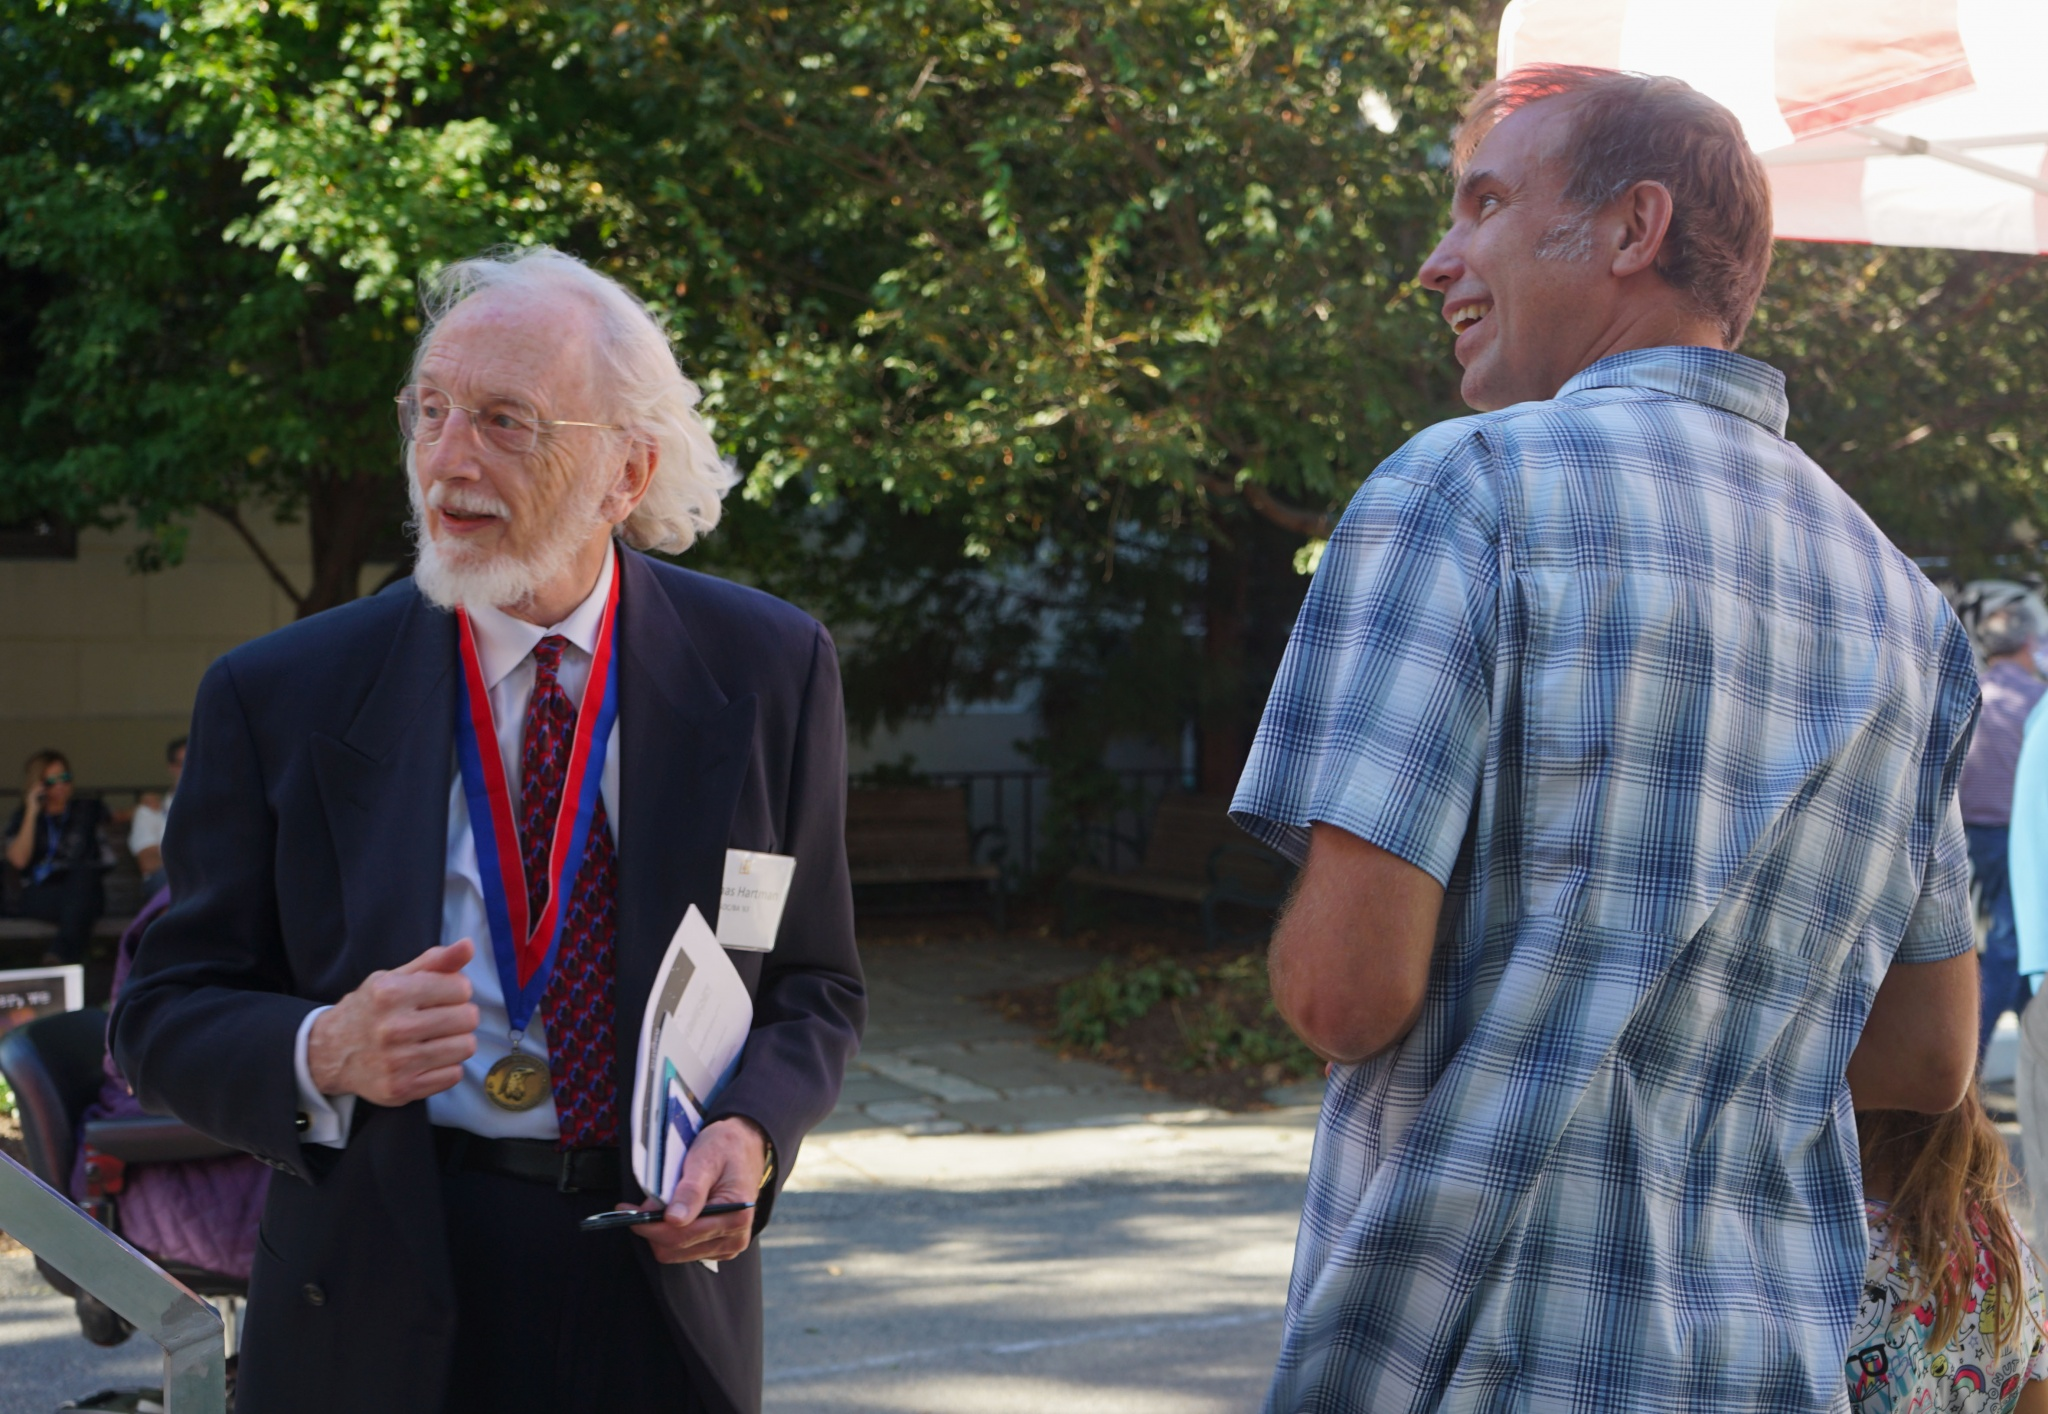 Dan Kerr talks with Thomas Hartman, a graduate of the Class of 1963.